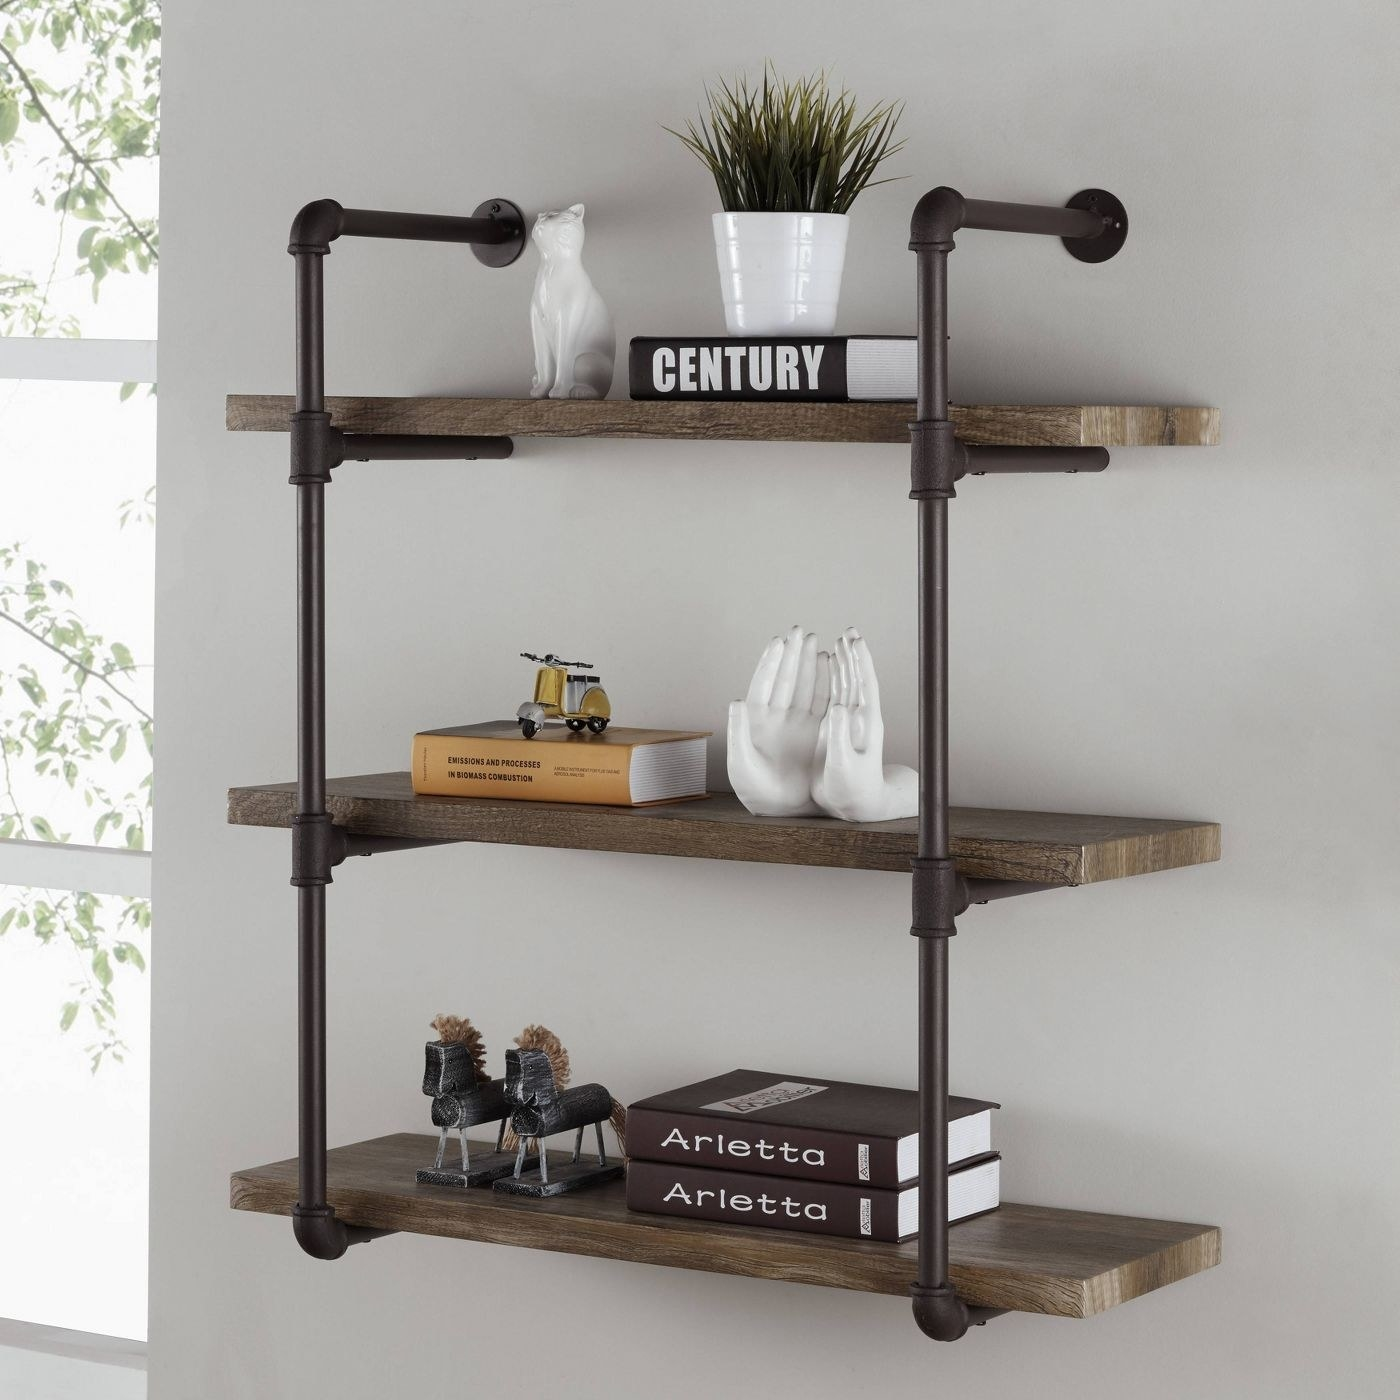 three wall shelves held together by industrial pipes